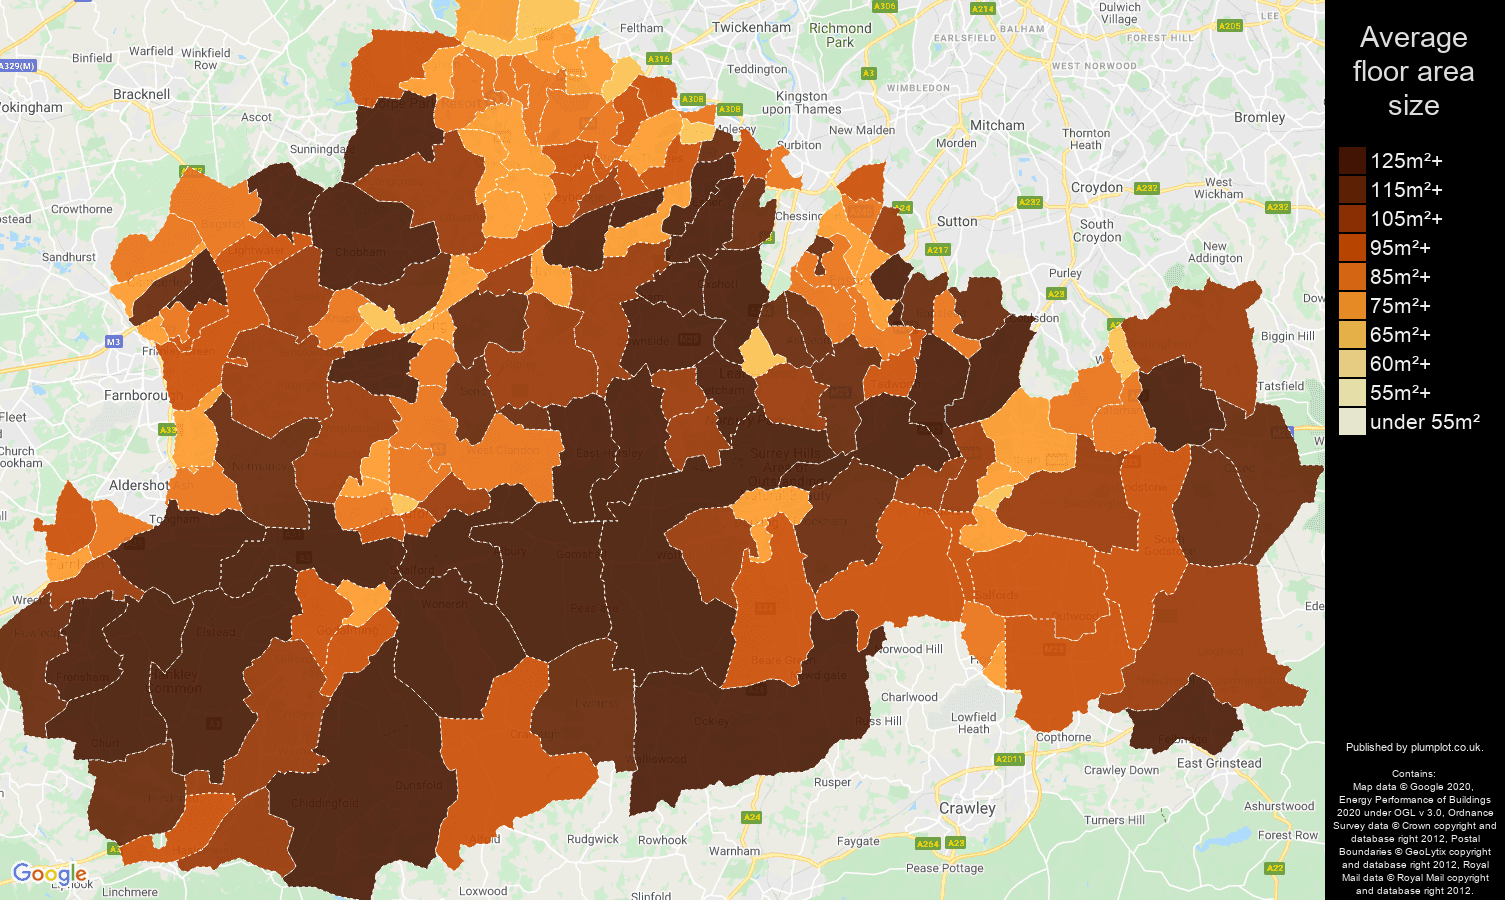 Surrey map of average floor area size of properties